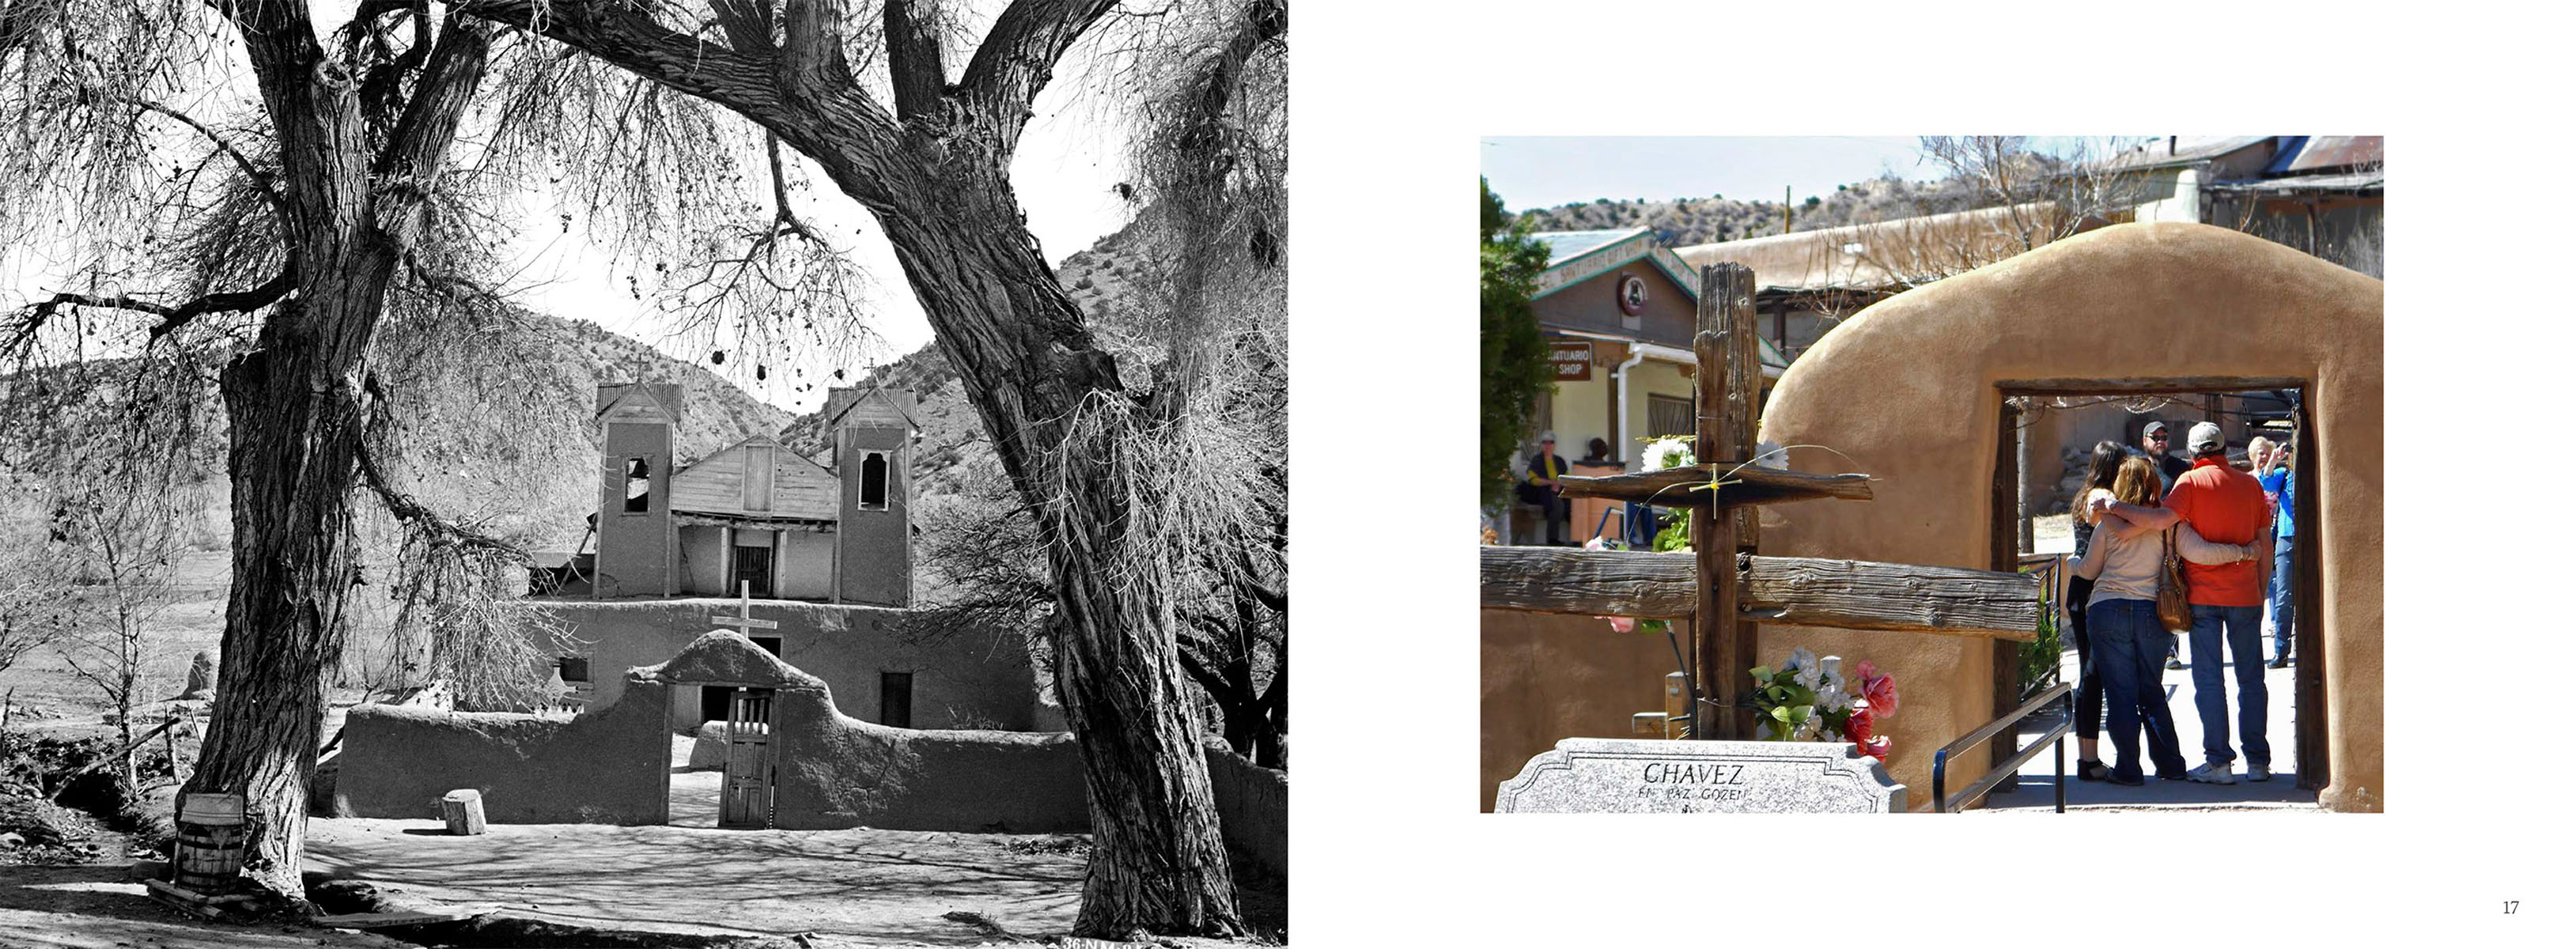 Chimayo: Lourdes of New Mexico by Helene CasanovaBook design and photo editing Paula GillenPrinter: Publications Printer Denver